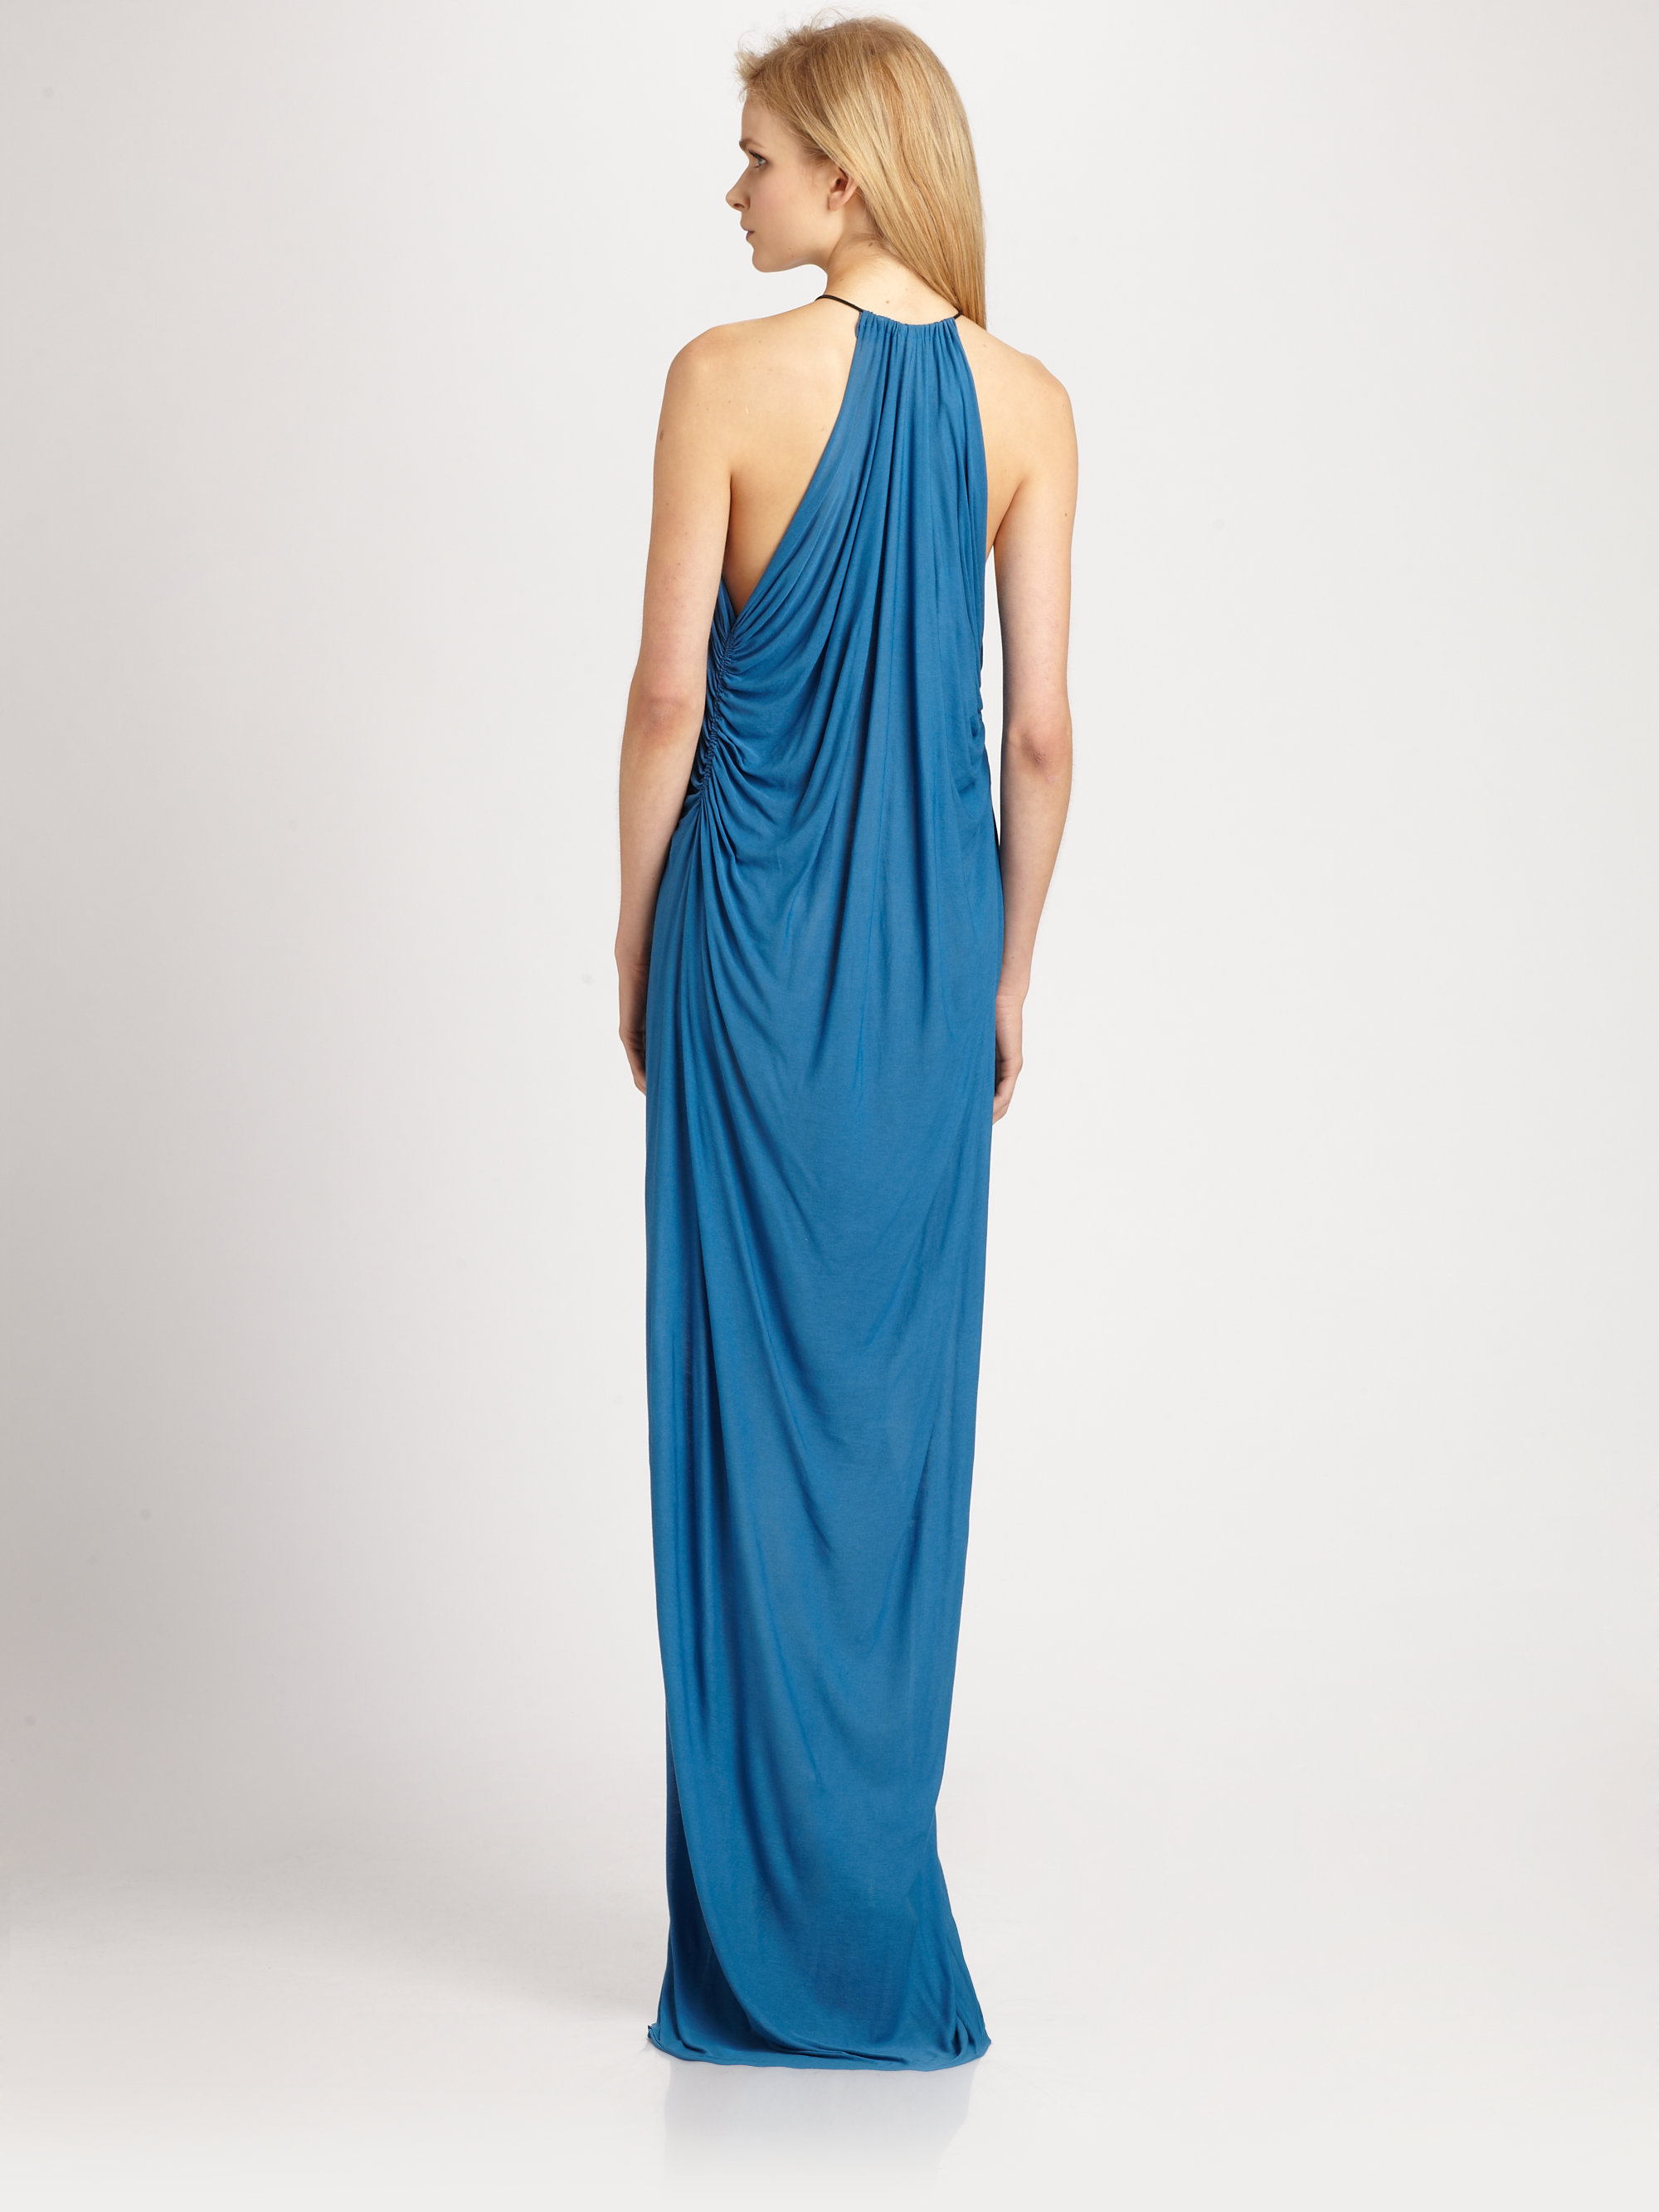 Lyst - Cut25 By Yigal Azrouël Shirred Jersey Knit Gown in Blue